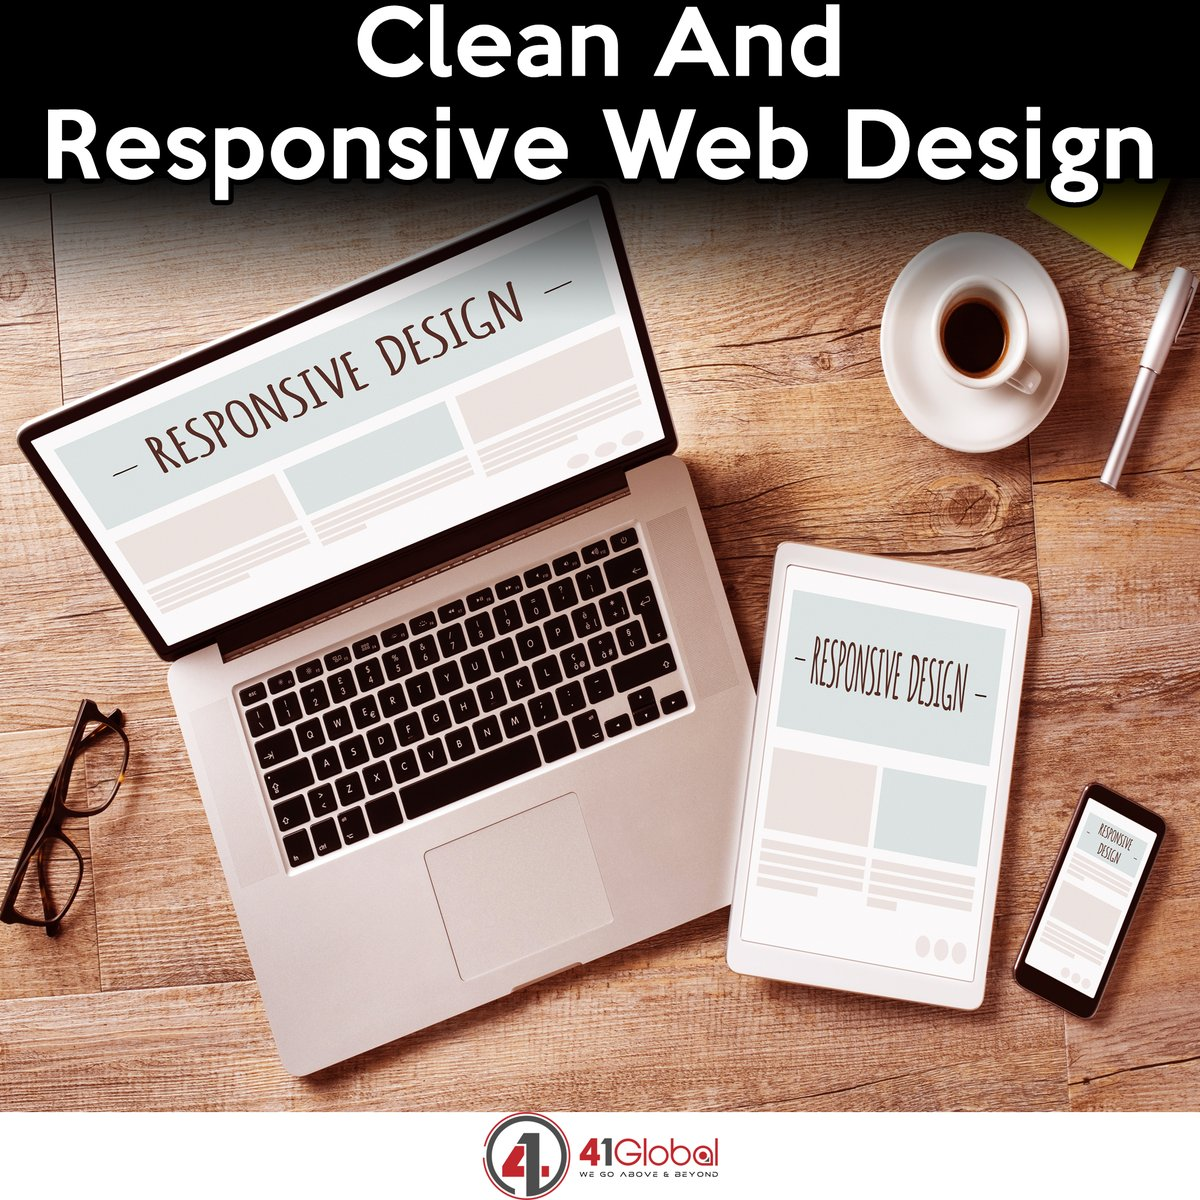 If you are starting a new company or looking for a entire website design revamp, look no further.  We will take care of your website needs and go above and beyond for you always! 😉  #41global #responsivewebdesign  #joomla  #webdesigning #wordpress #SmallBusinesses https://t.co/LrwuMgdqEA